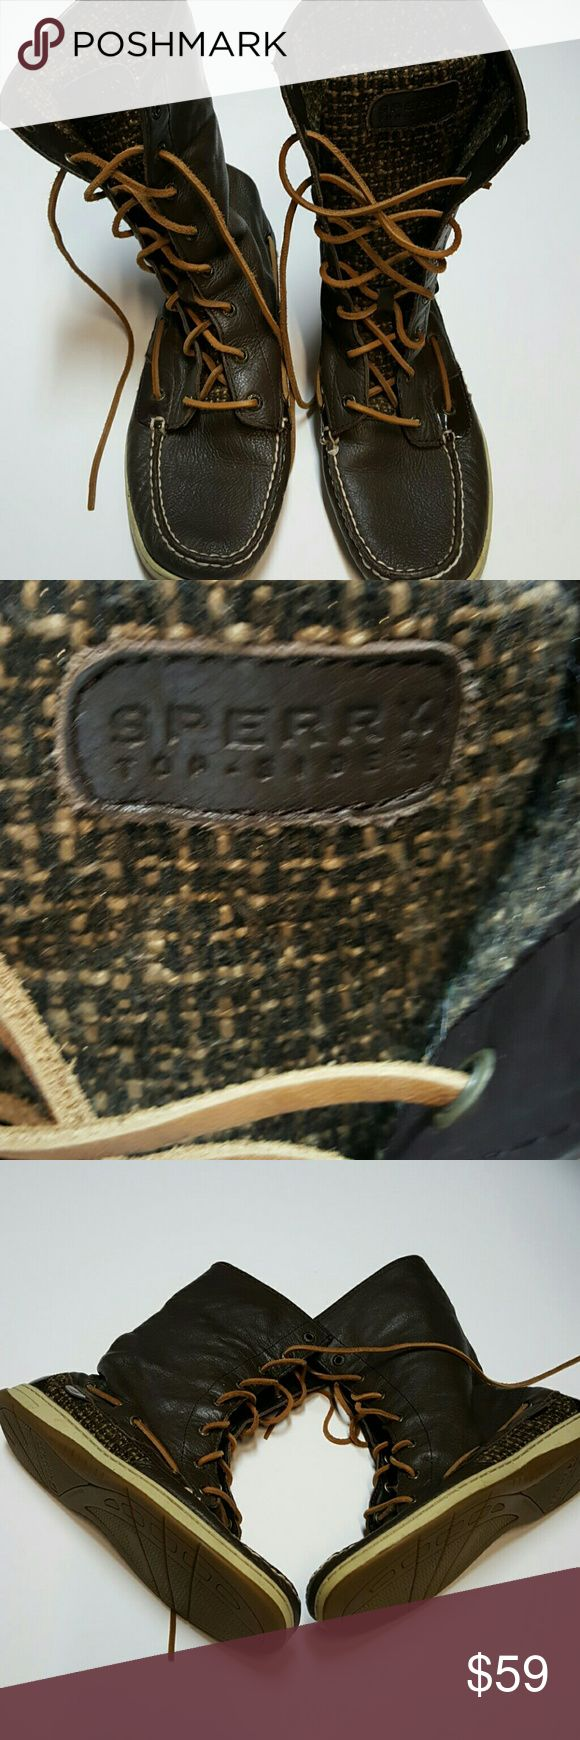 Sperry Top Sider Boots Brown Womens 10M Rare and well kept Sperry Top Sider Dark Chocolate Brown Boots. Very Comfortable and in Excellent Condition. Size 10M Sperry Shoes Lace Up Boots